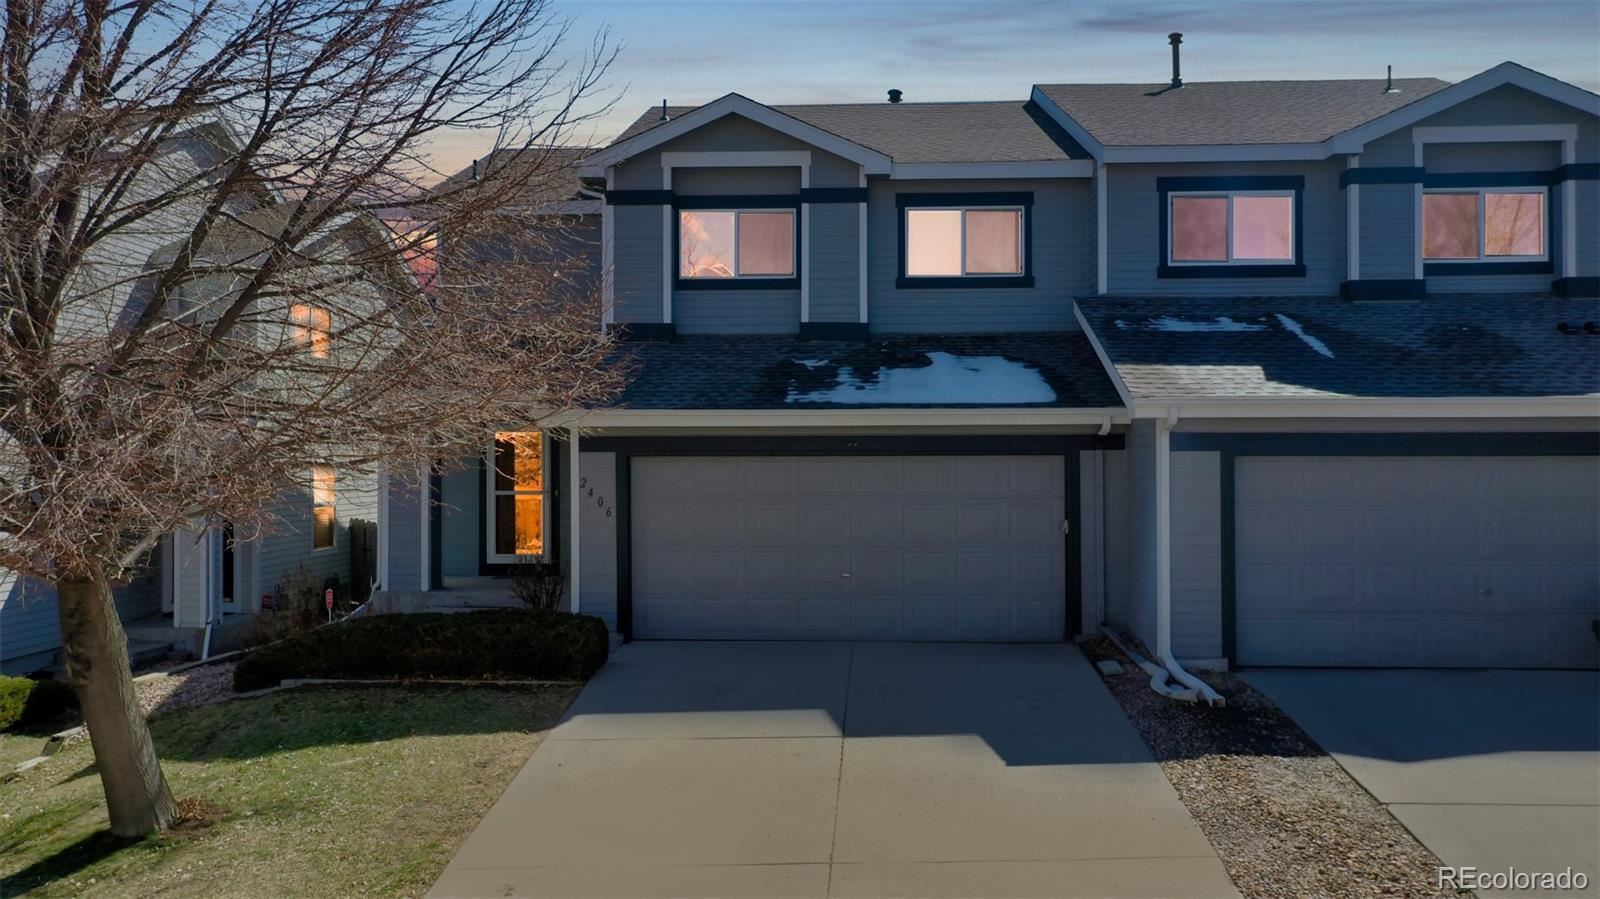 2406 E 109th Drive, Northglenn, CO 80233 - #: 5883422